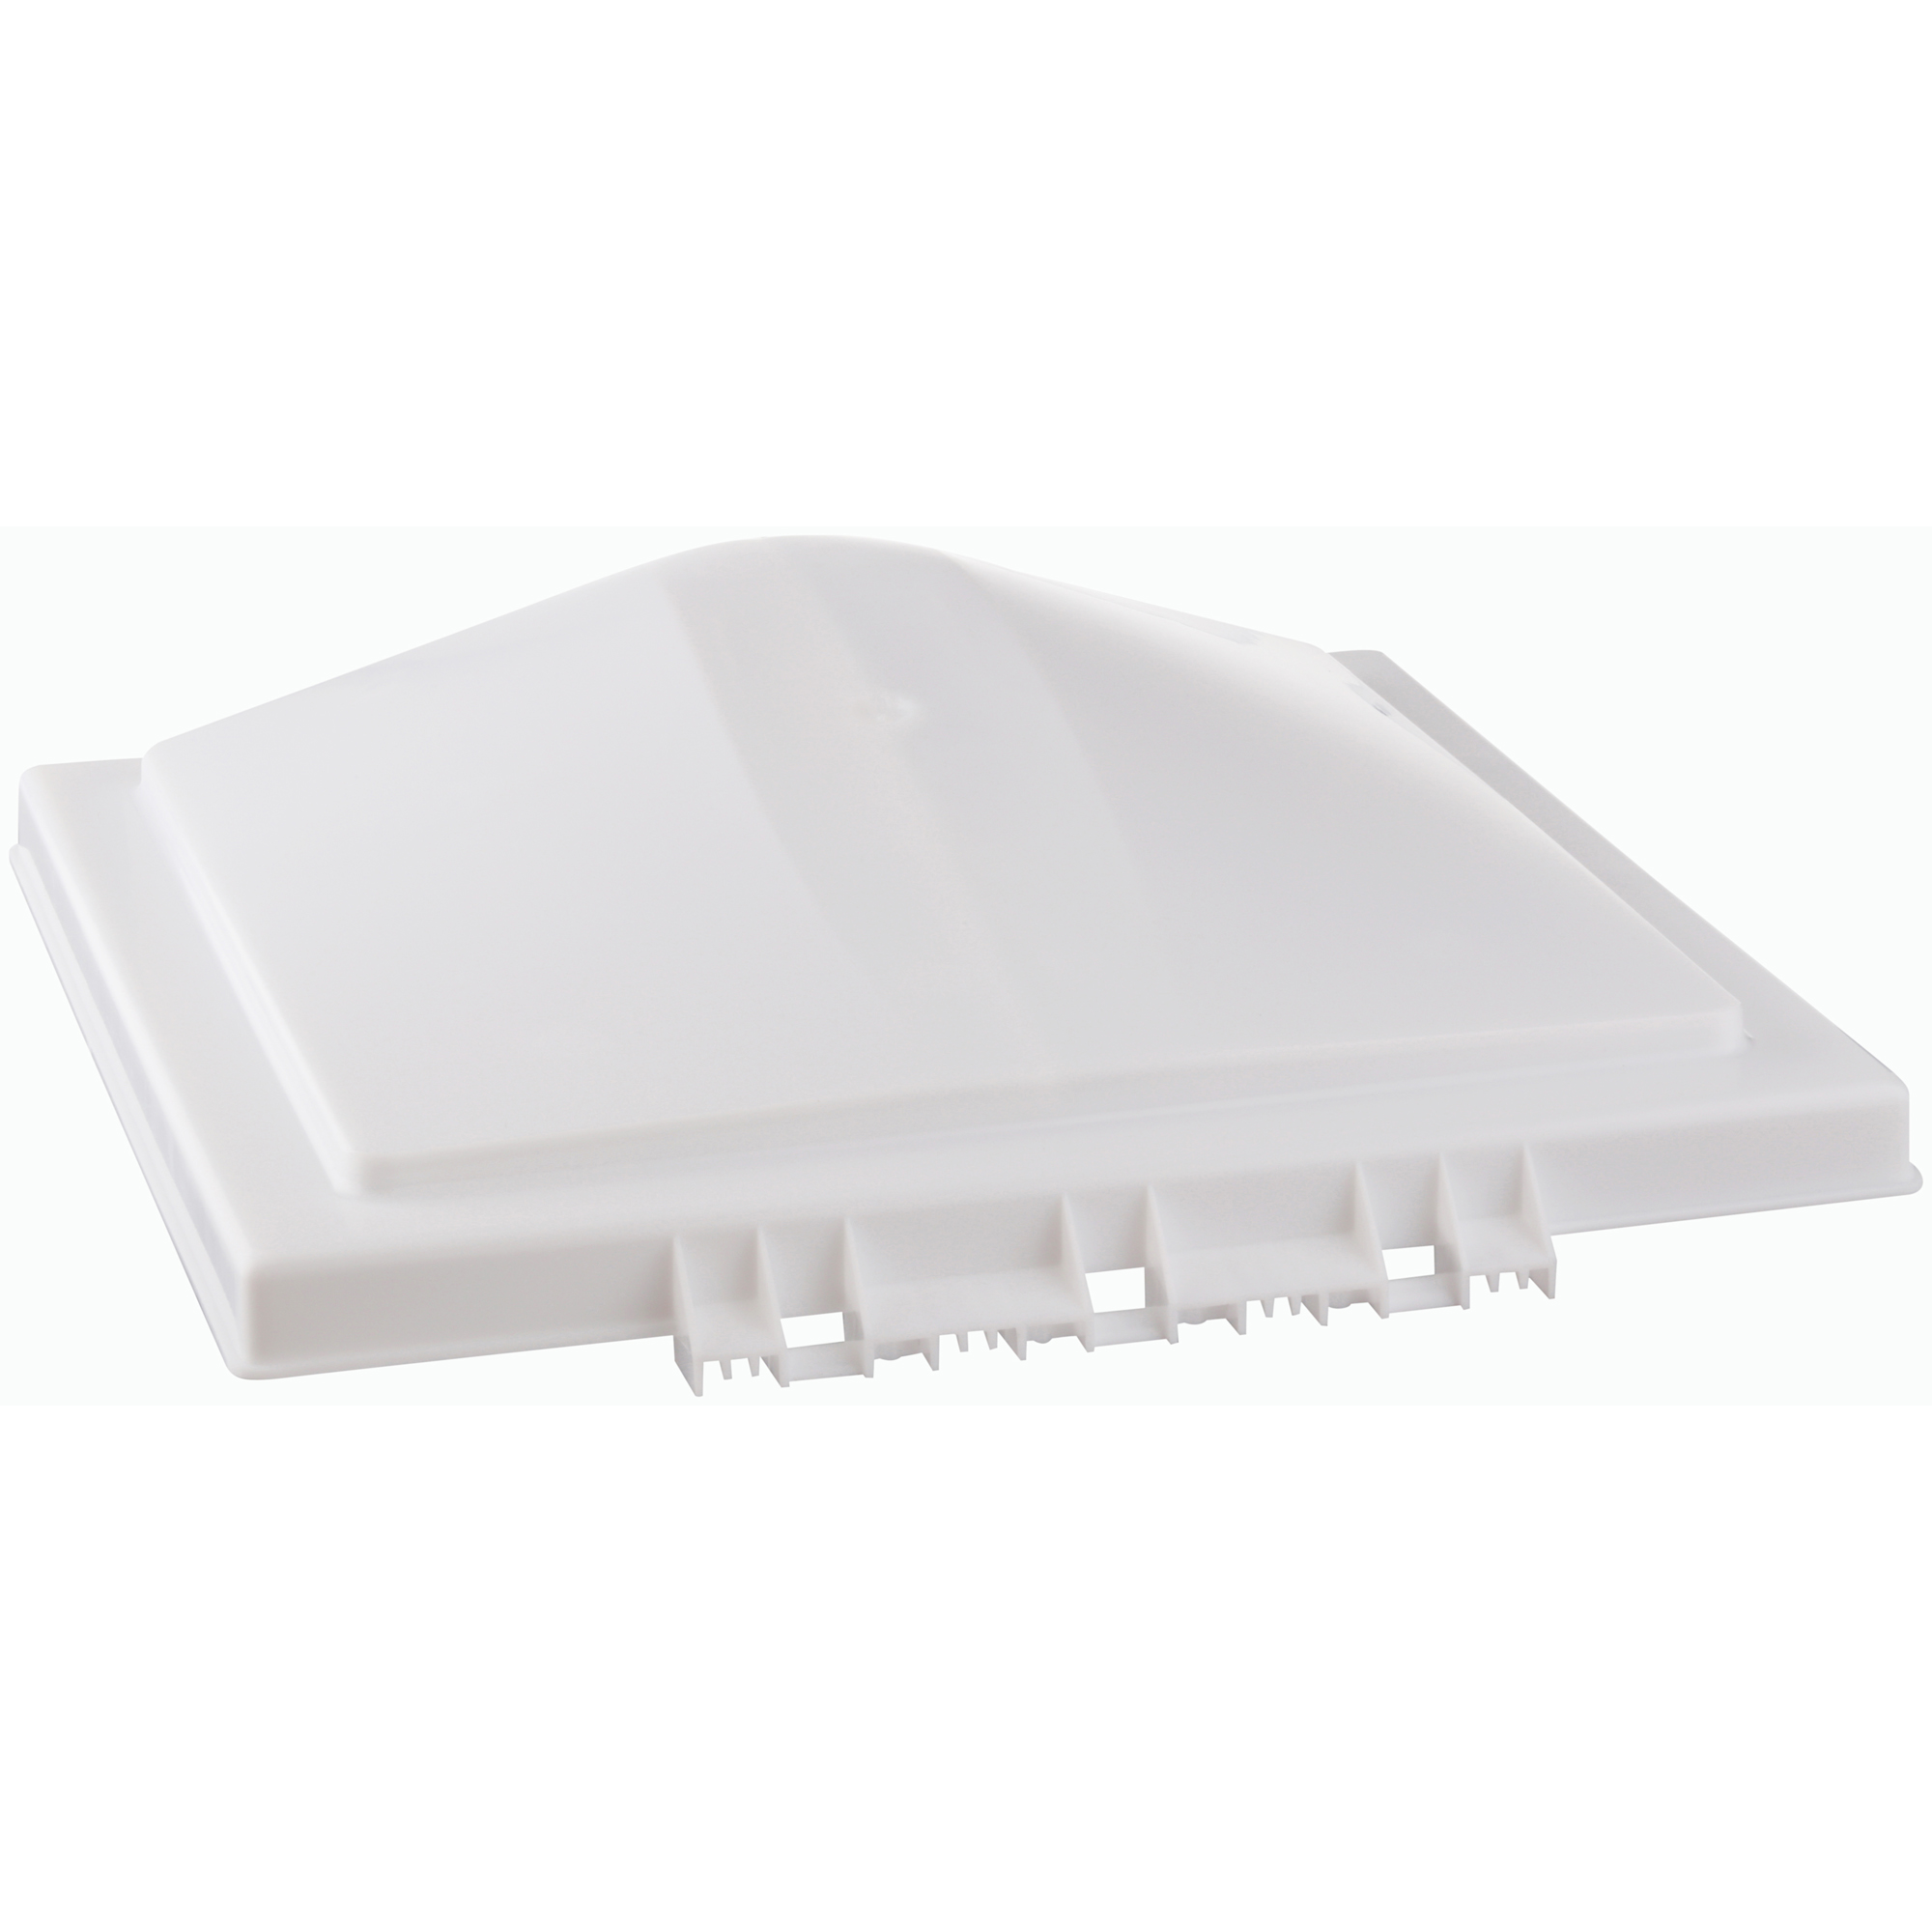 Camco RV Vent Lid